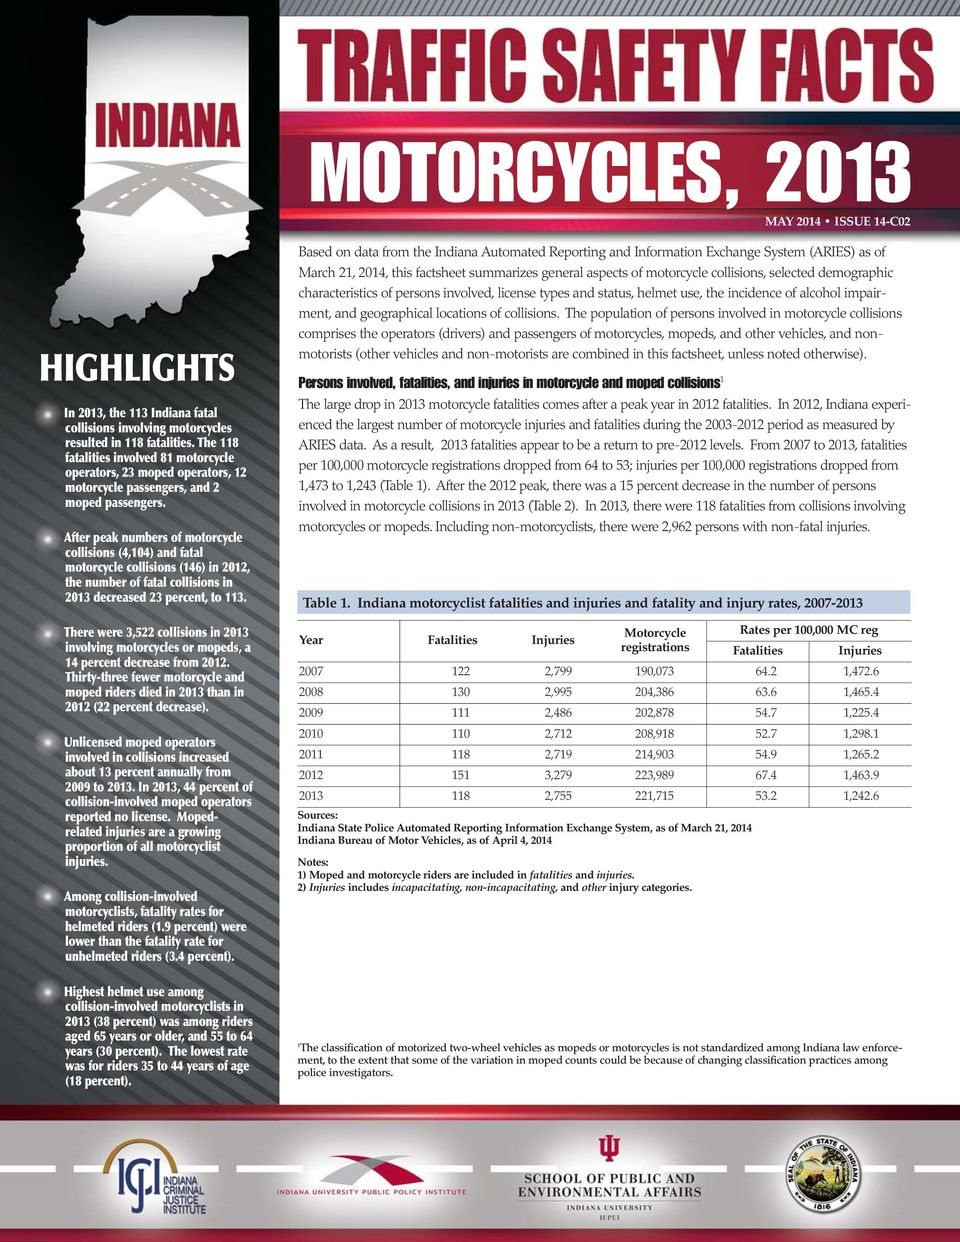 After peak numbers of motorcycle collisions (4,104) and fatal motorcycle collisions (146) in 2012, the number of fatal collisions in 2013 decreased 23 percent, to 113.